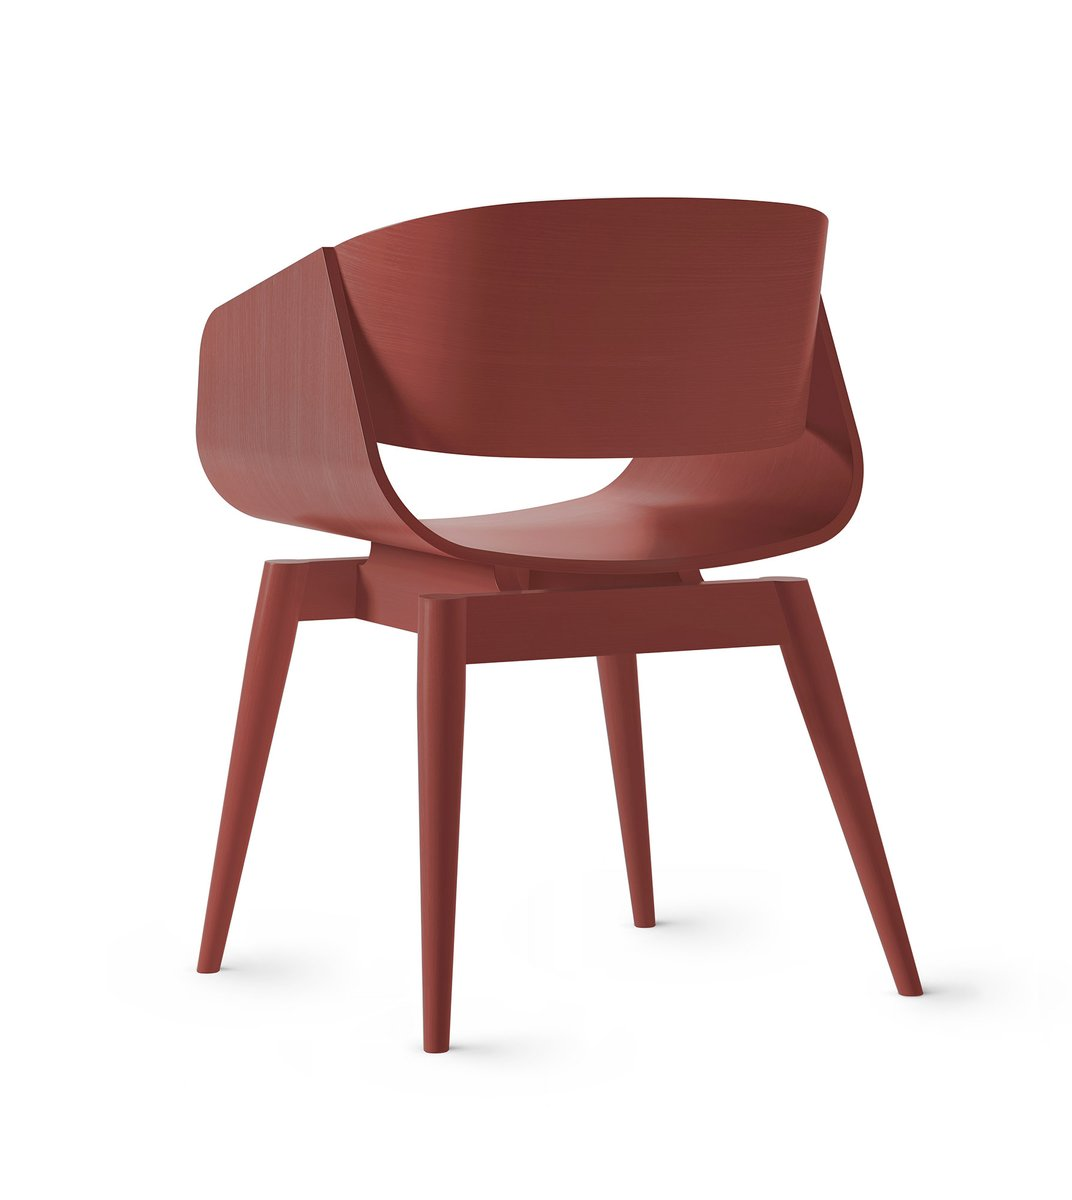 4th Armchair Color In Red By Almost For Sale At Pamono